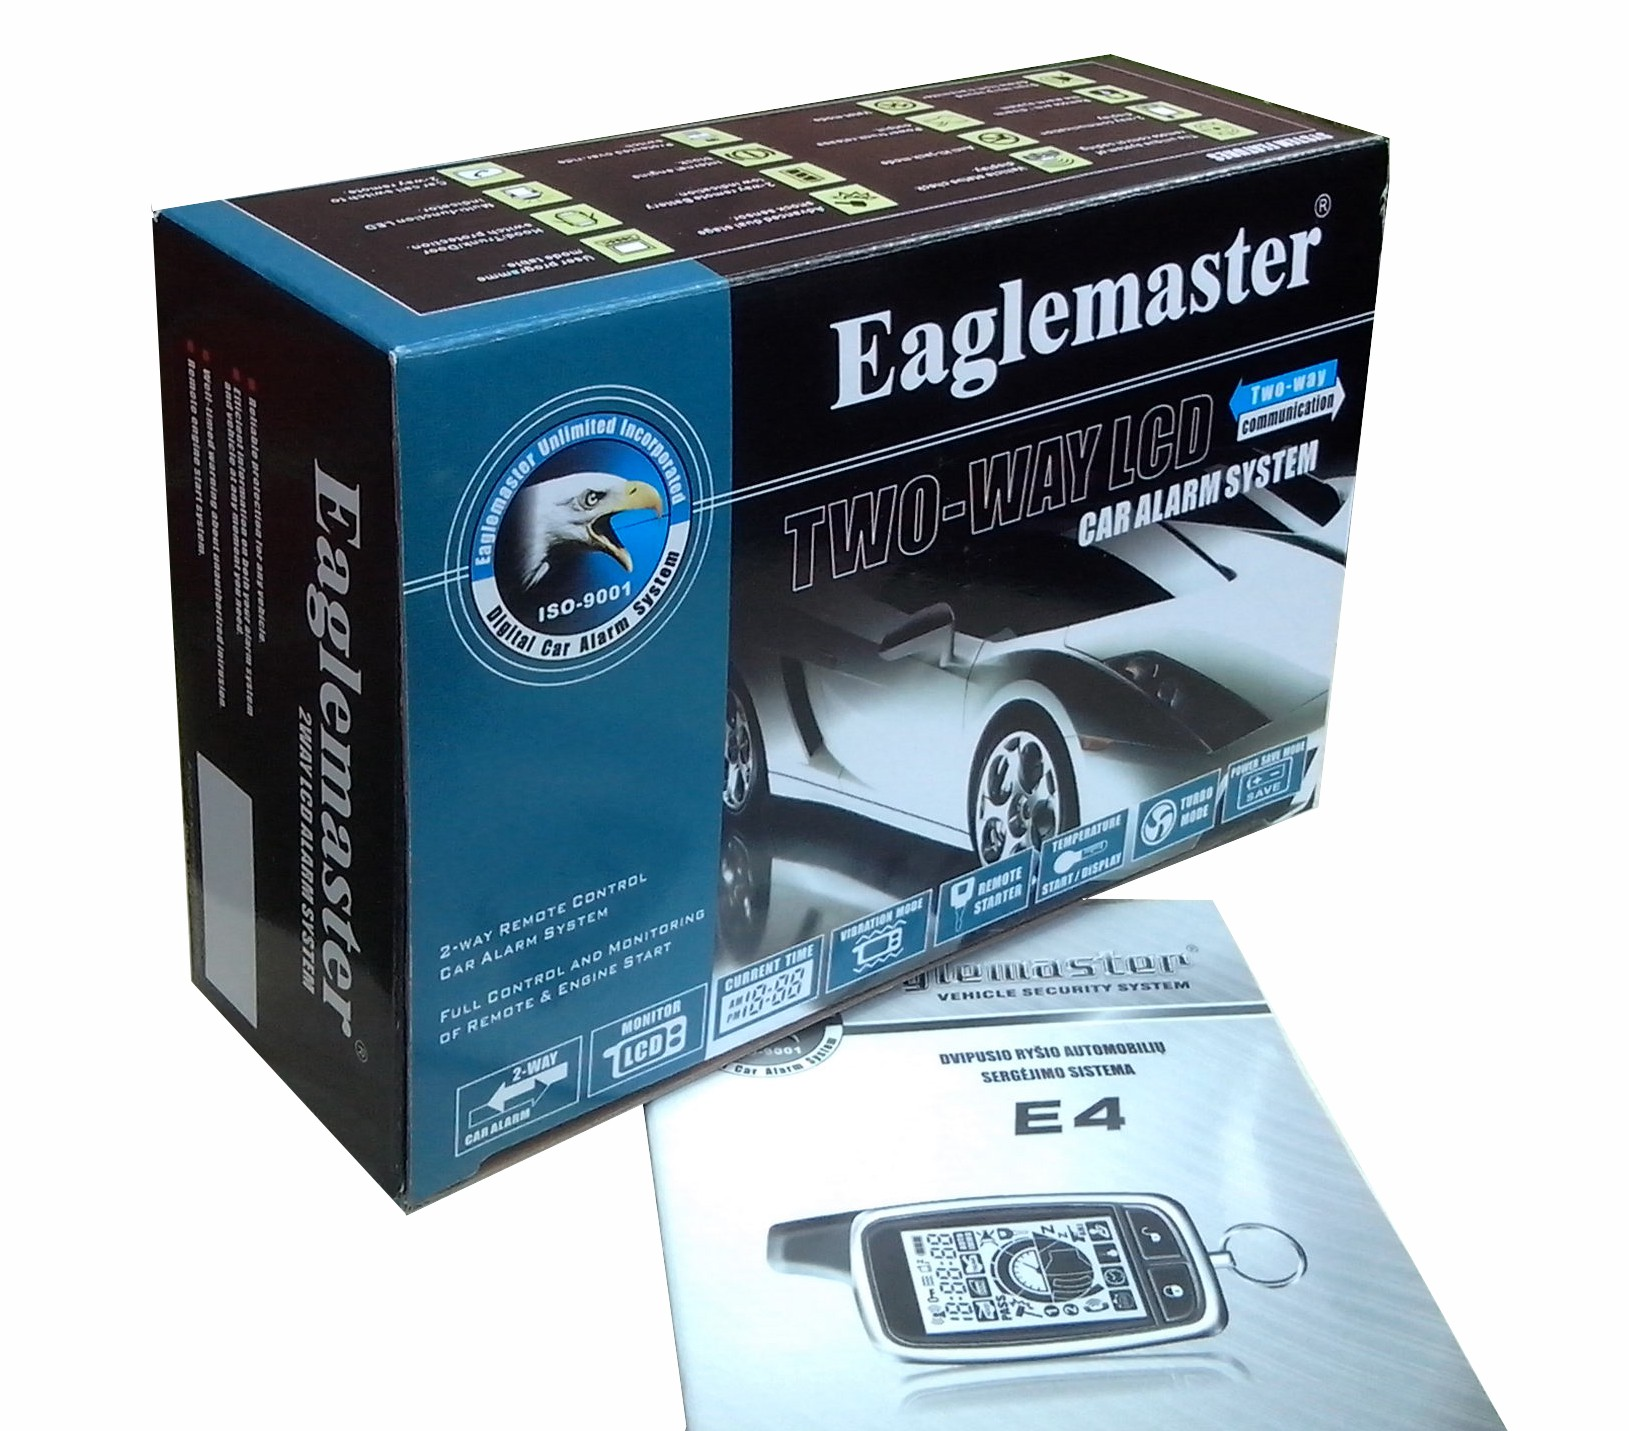 Two way car alarm Eaglemaster E4 G21